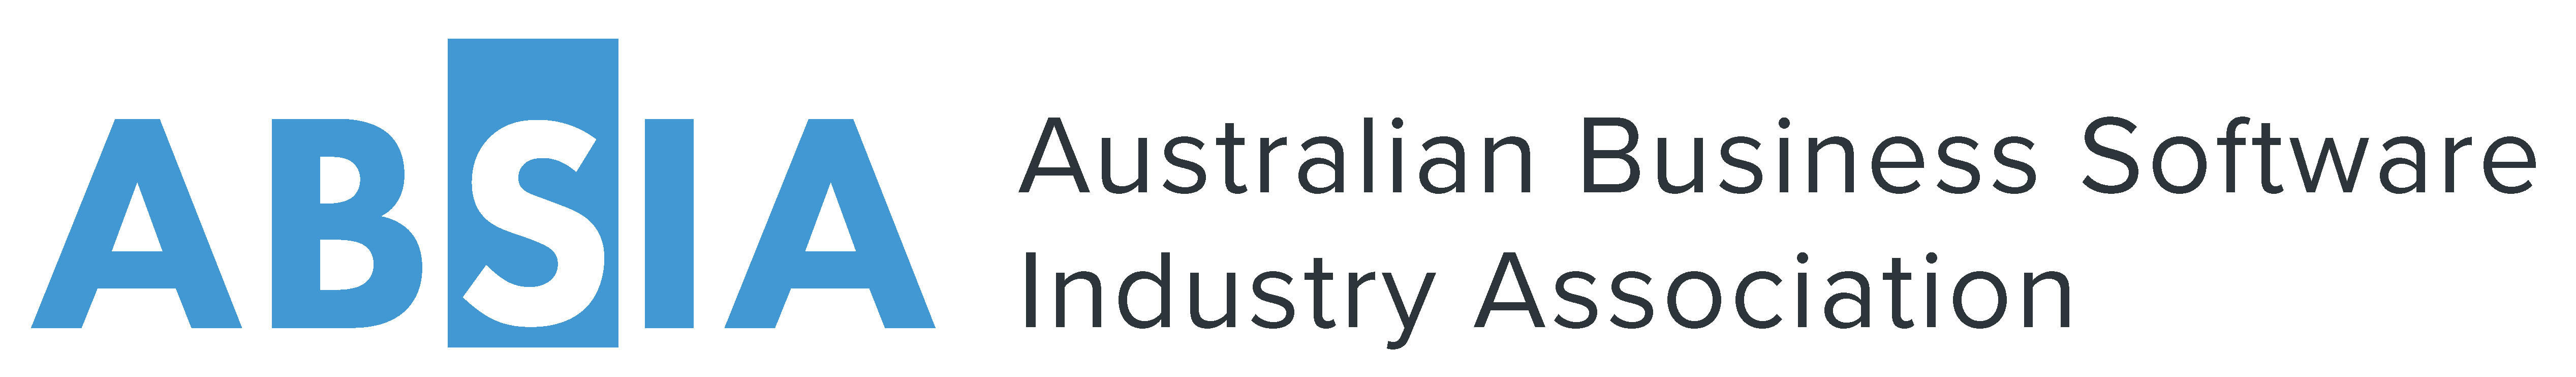 Australia Business Software Industry Association